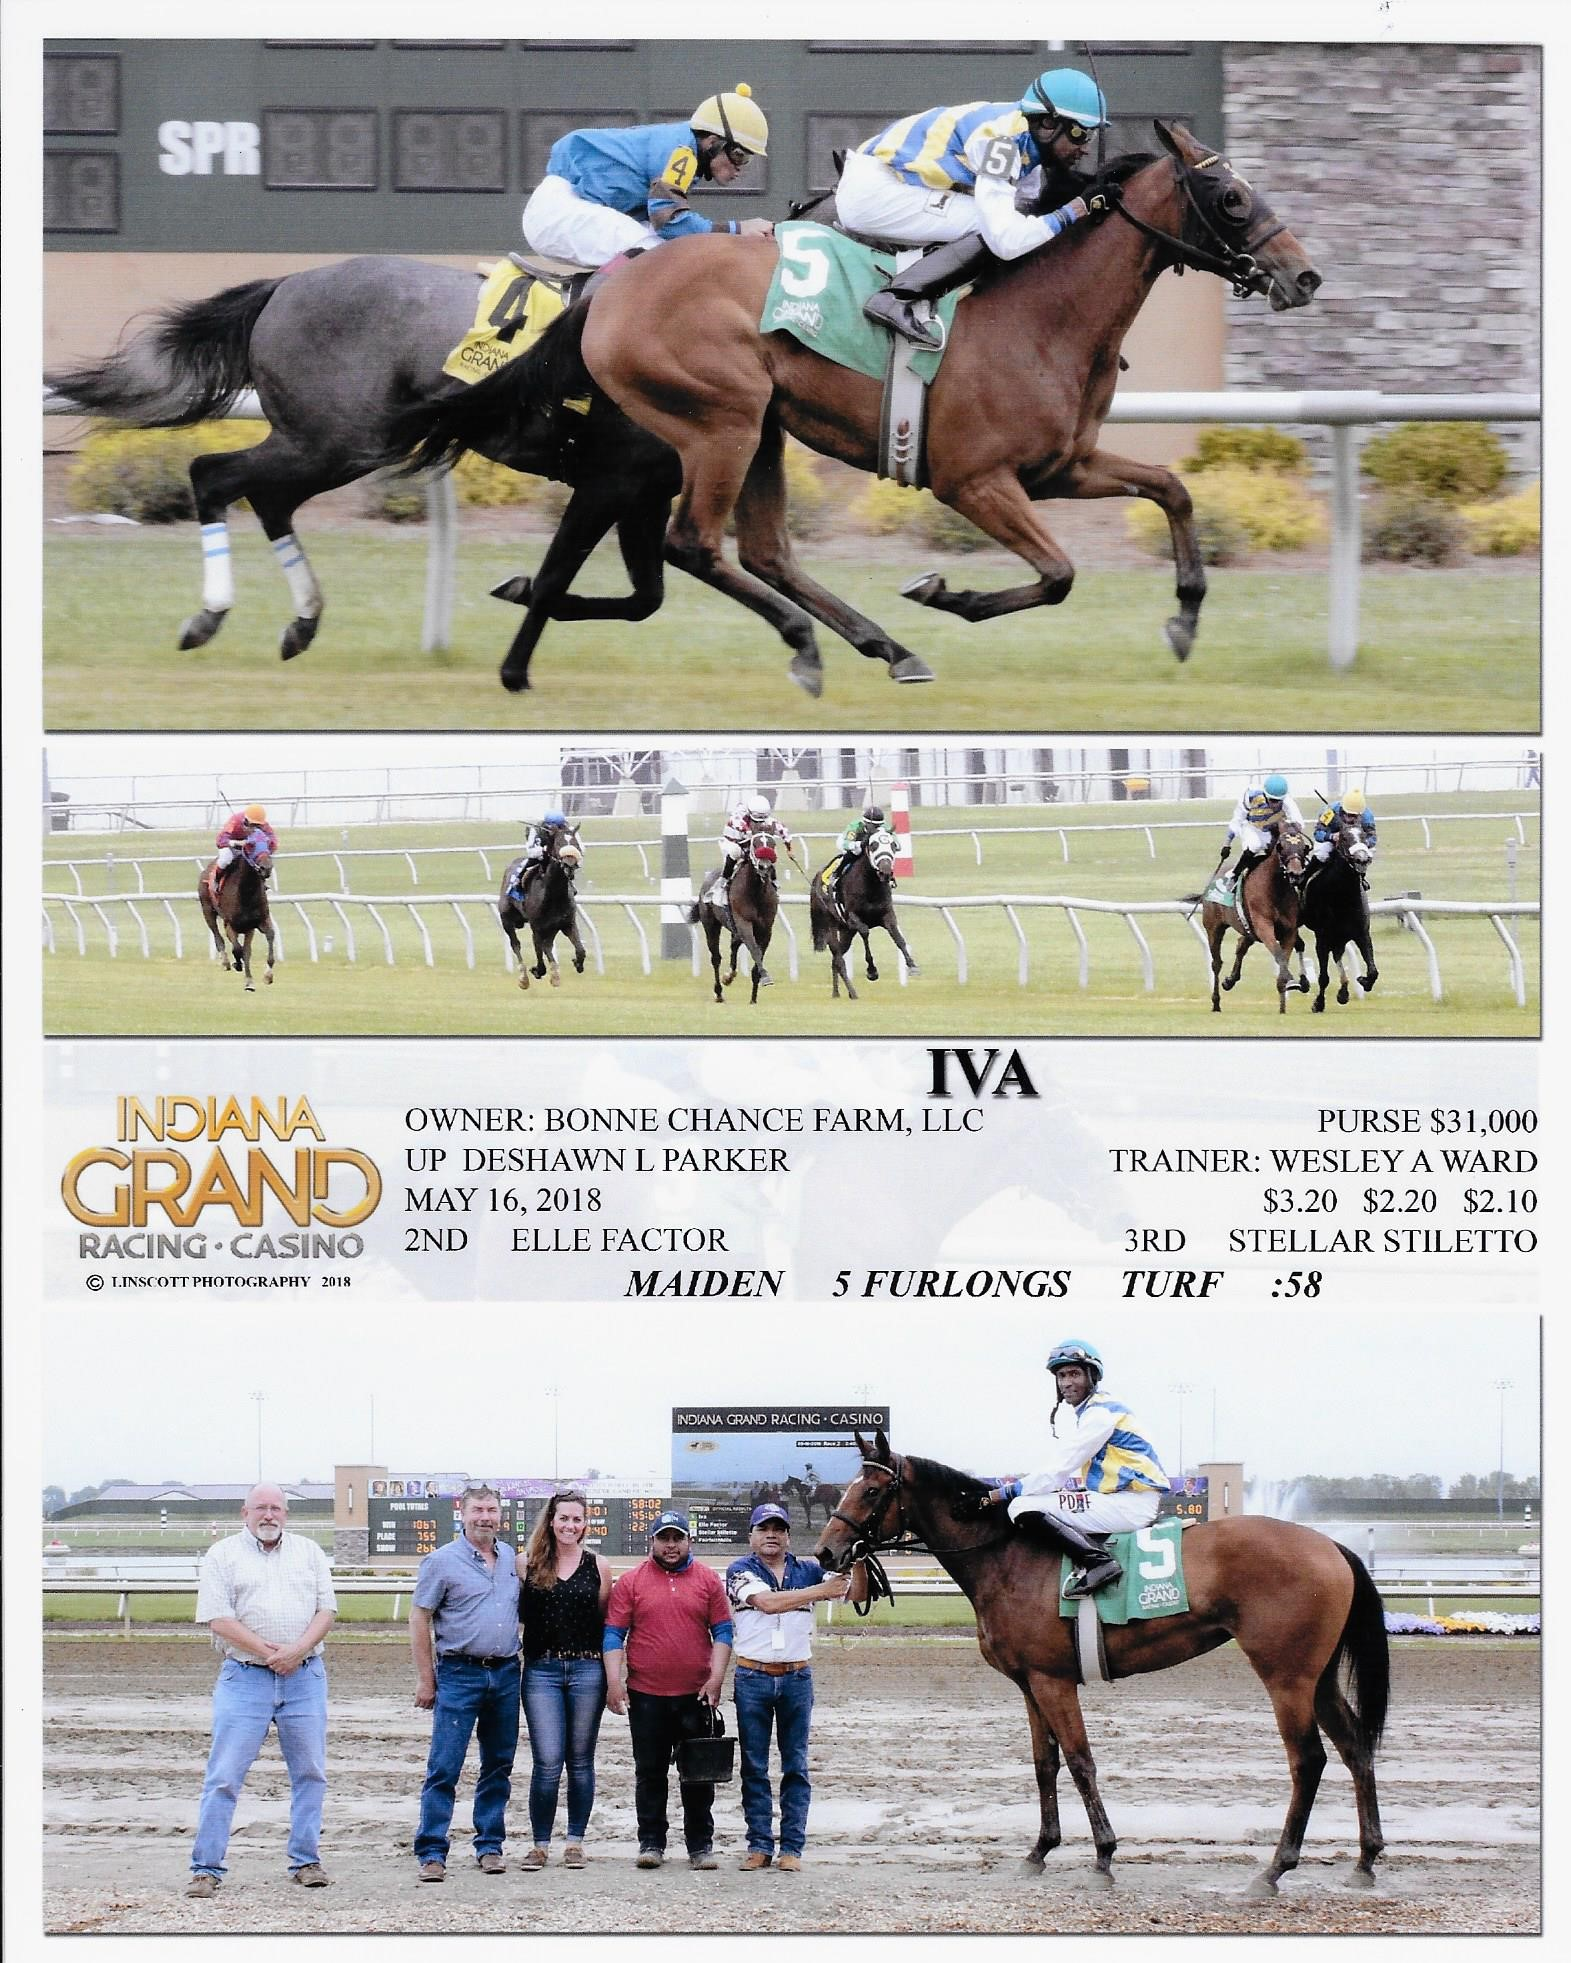 Iva MSW Indiana Grand